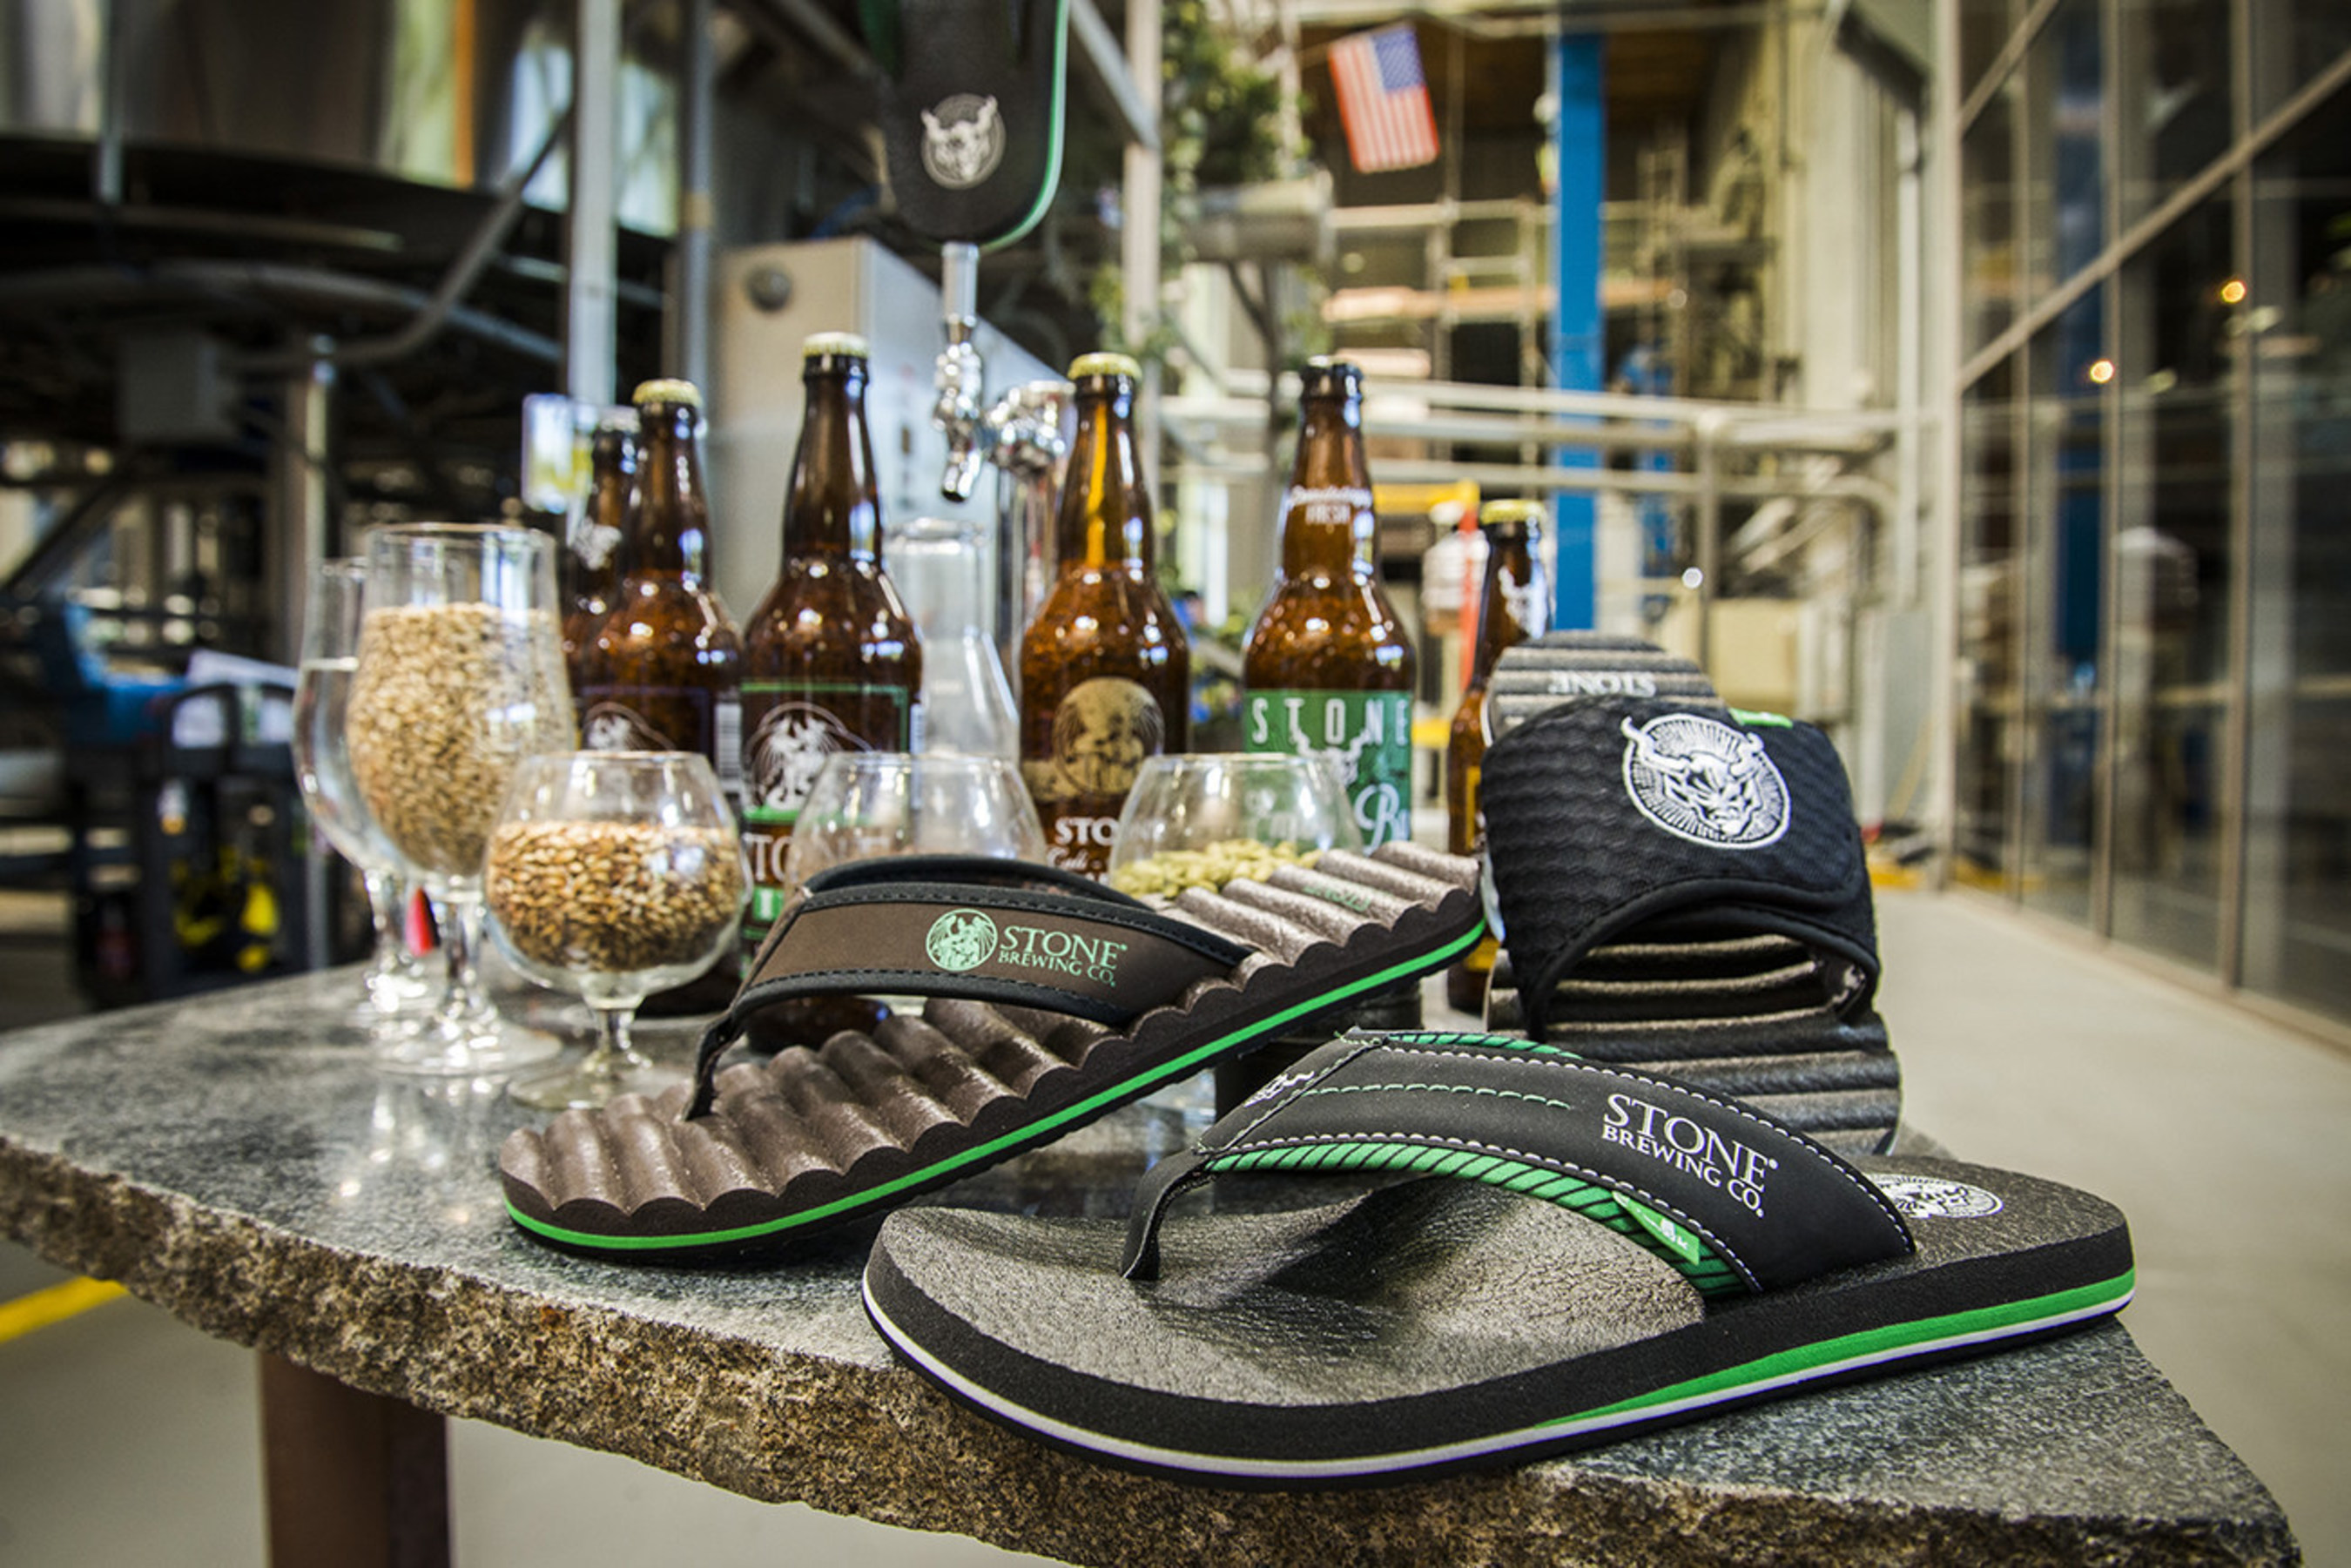 The Sanuk Craft Beer Cozy Sandal Collection Produced in Collaboration with Stone Brewing